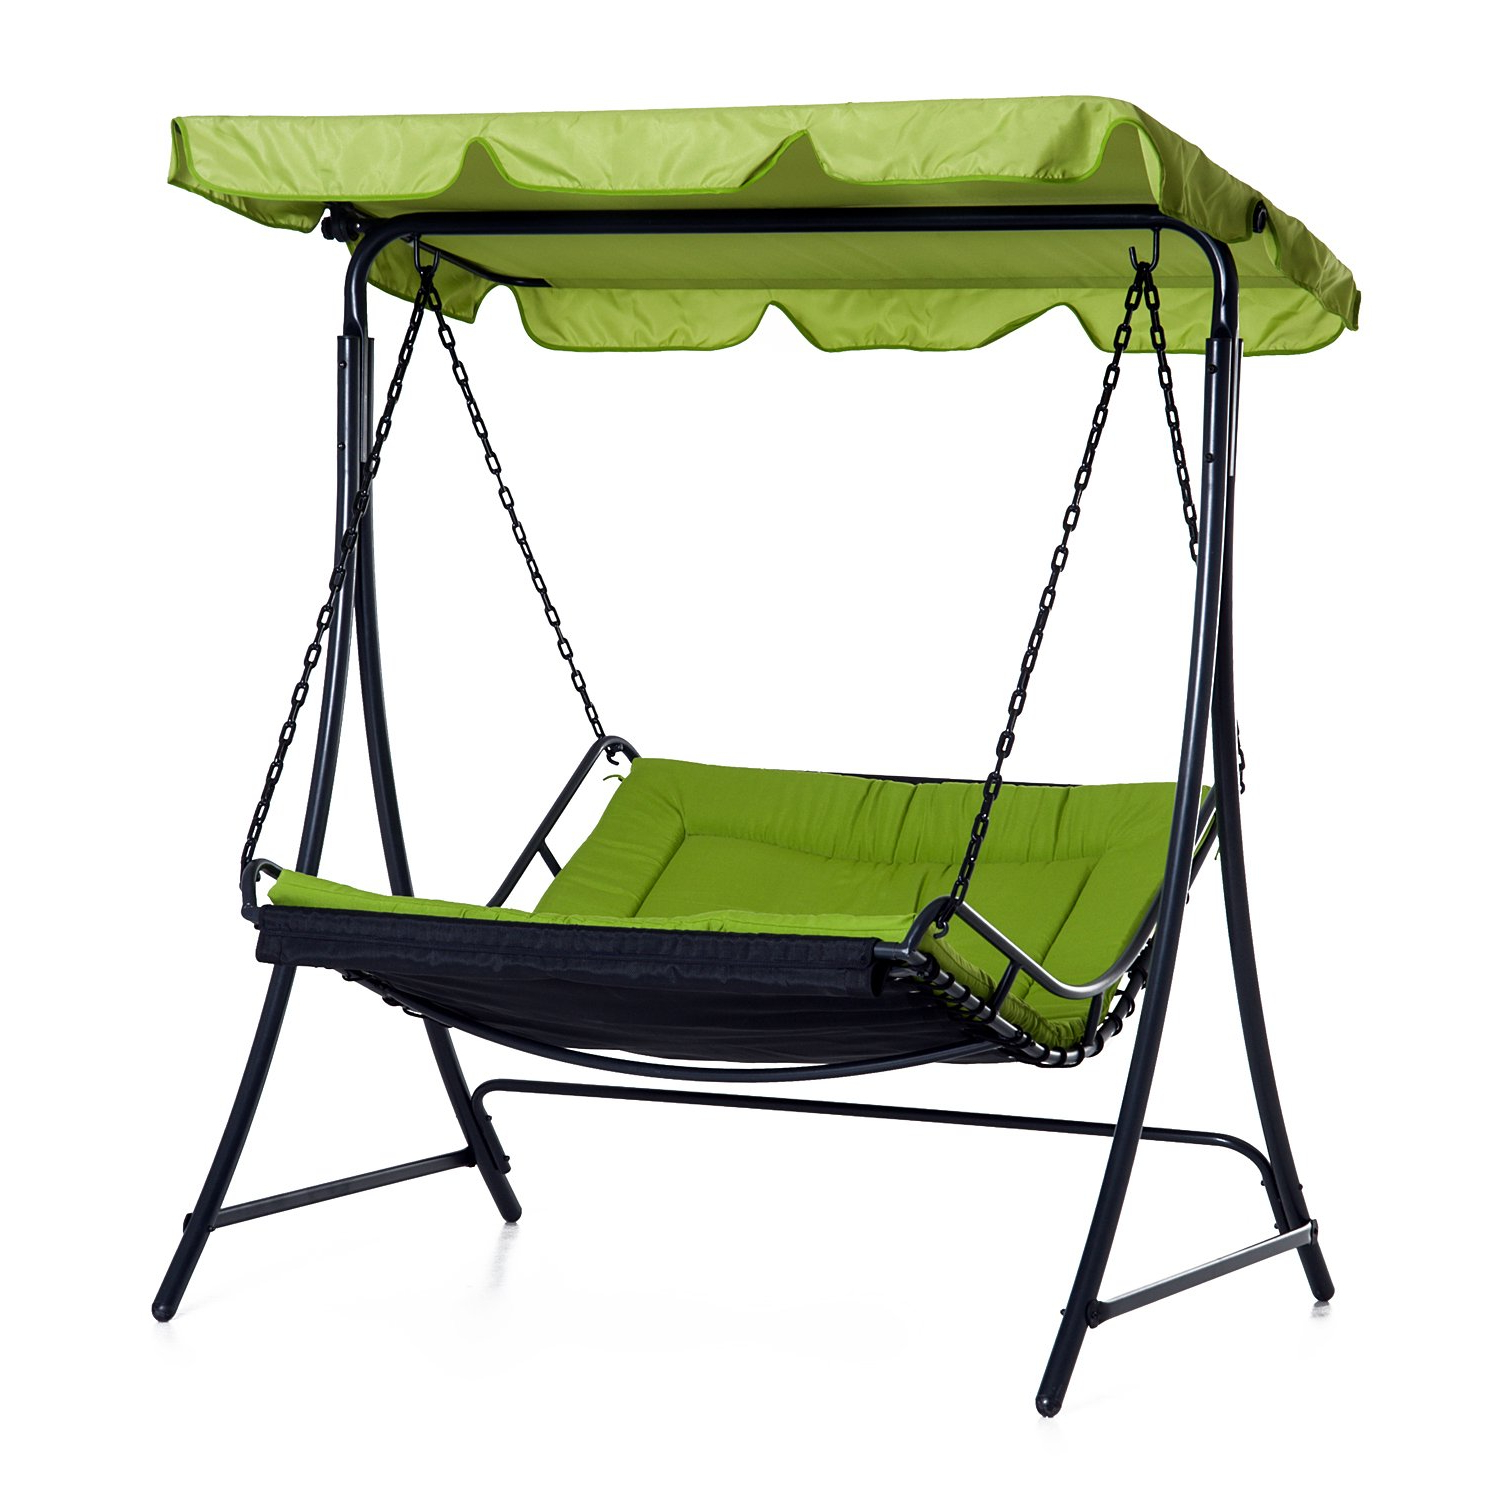 Outsunny Swing Chair Bed Canopy 2 Person Double Hammock Inside Most Popular Garden Leisure Outdoor Hammock Patio Canopy Rocking Chairs (View 4 of 30)